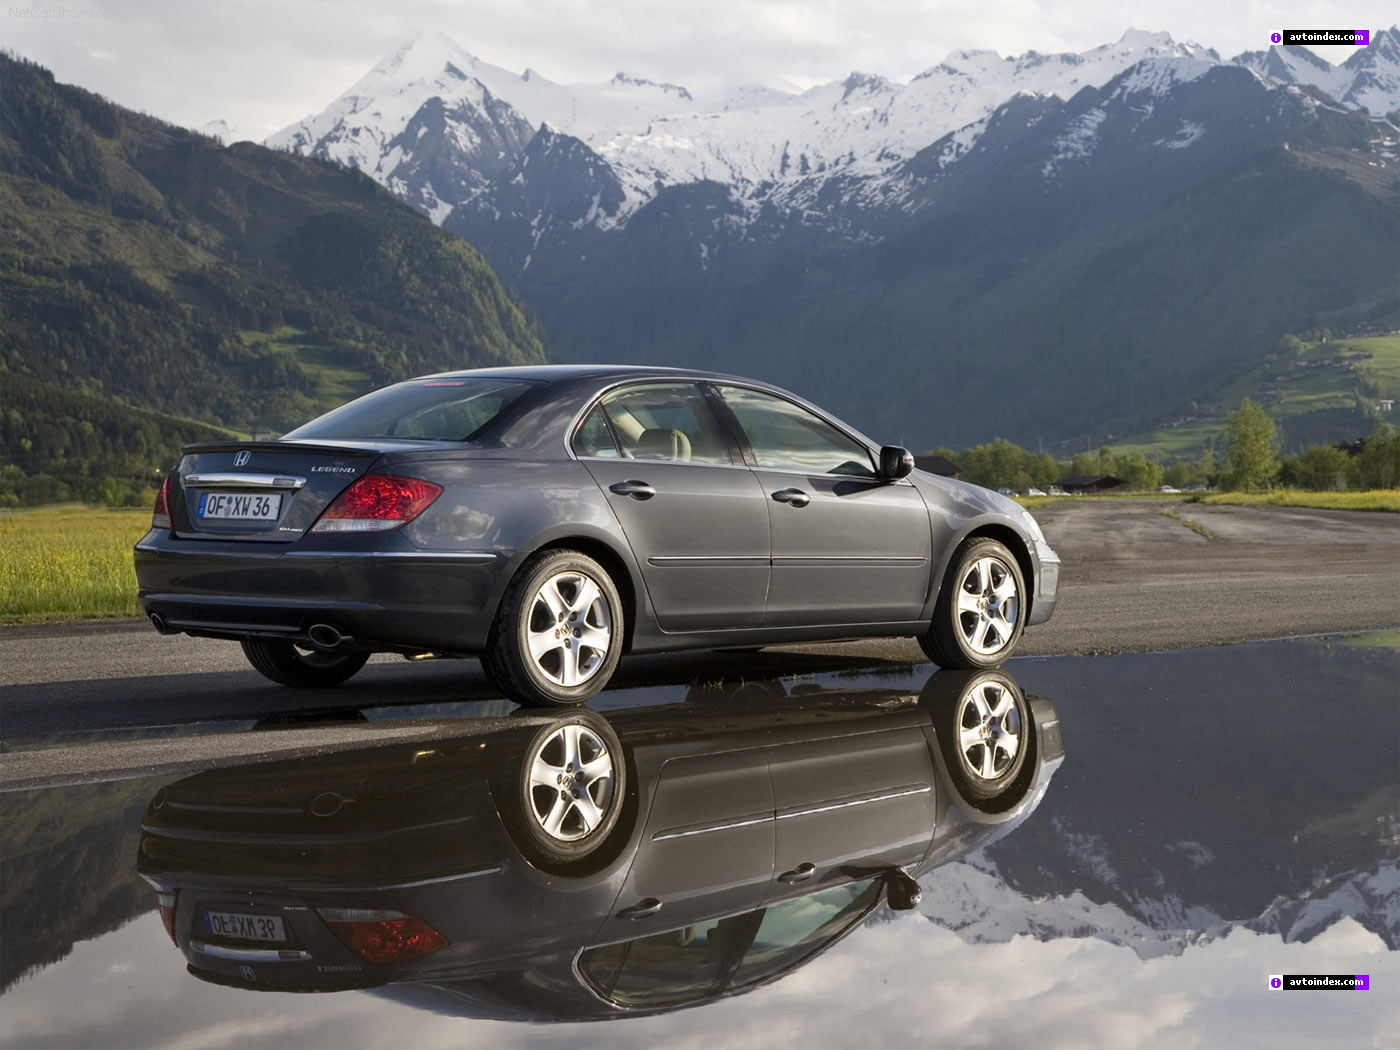 Honda Legend: 12 фото